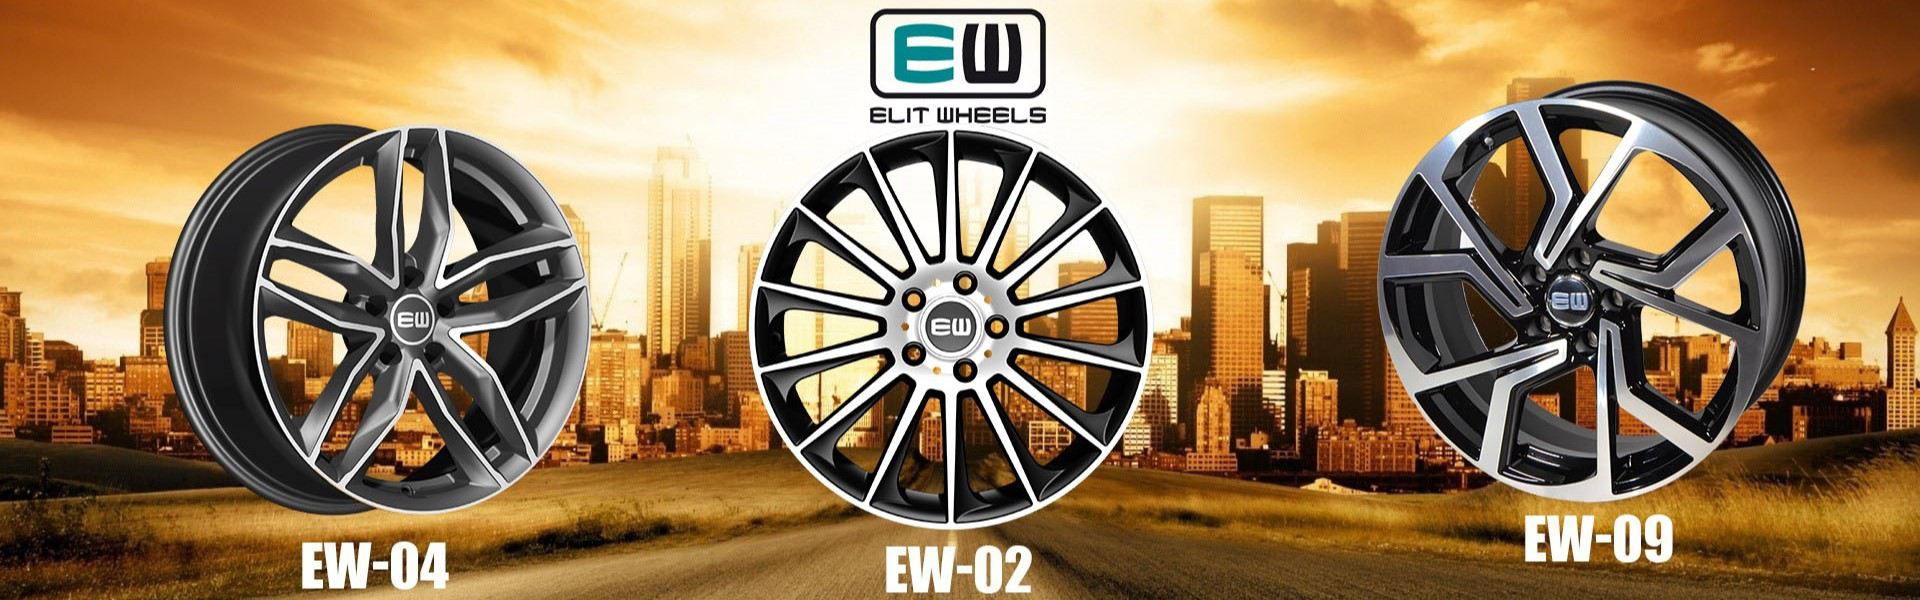 Llantas EW Elite Wheels